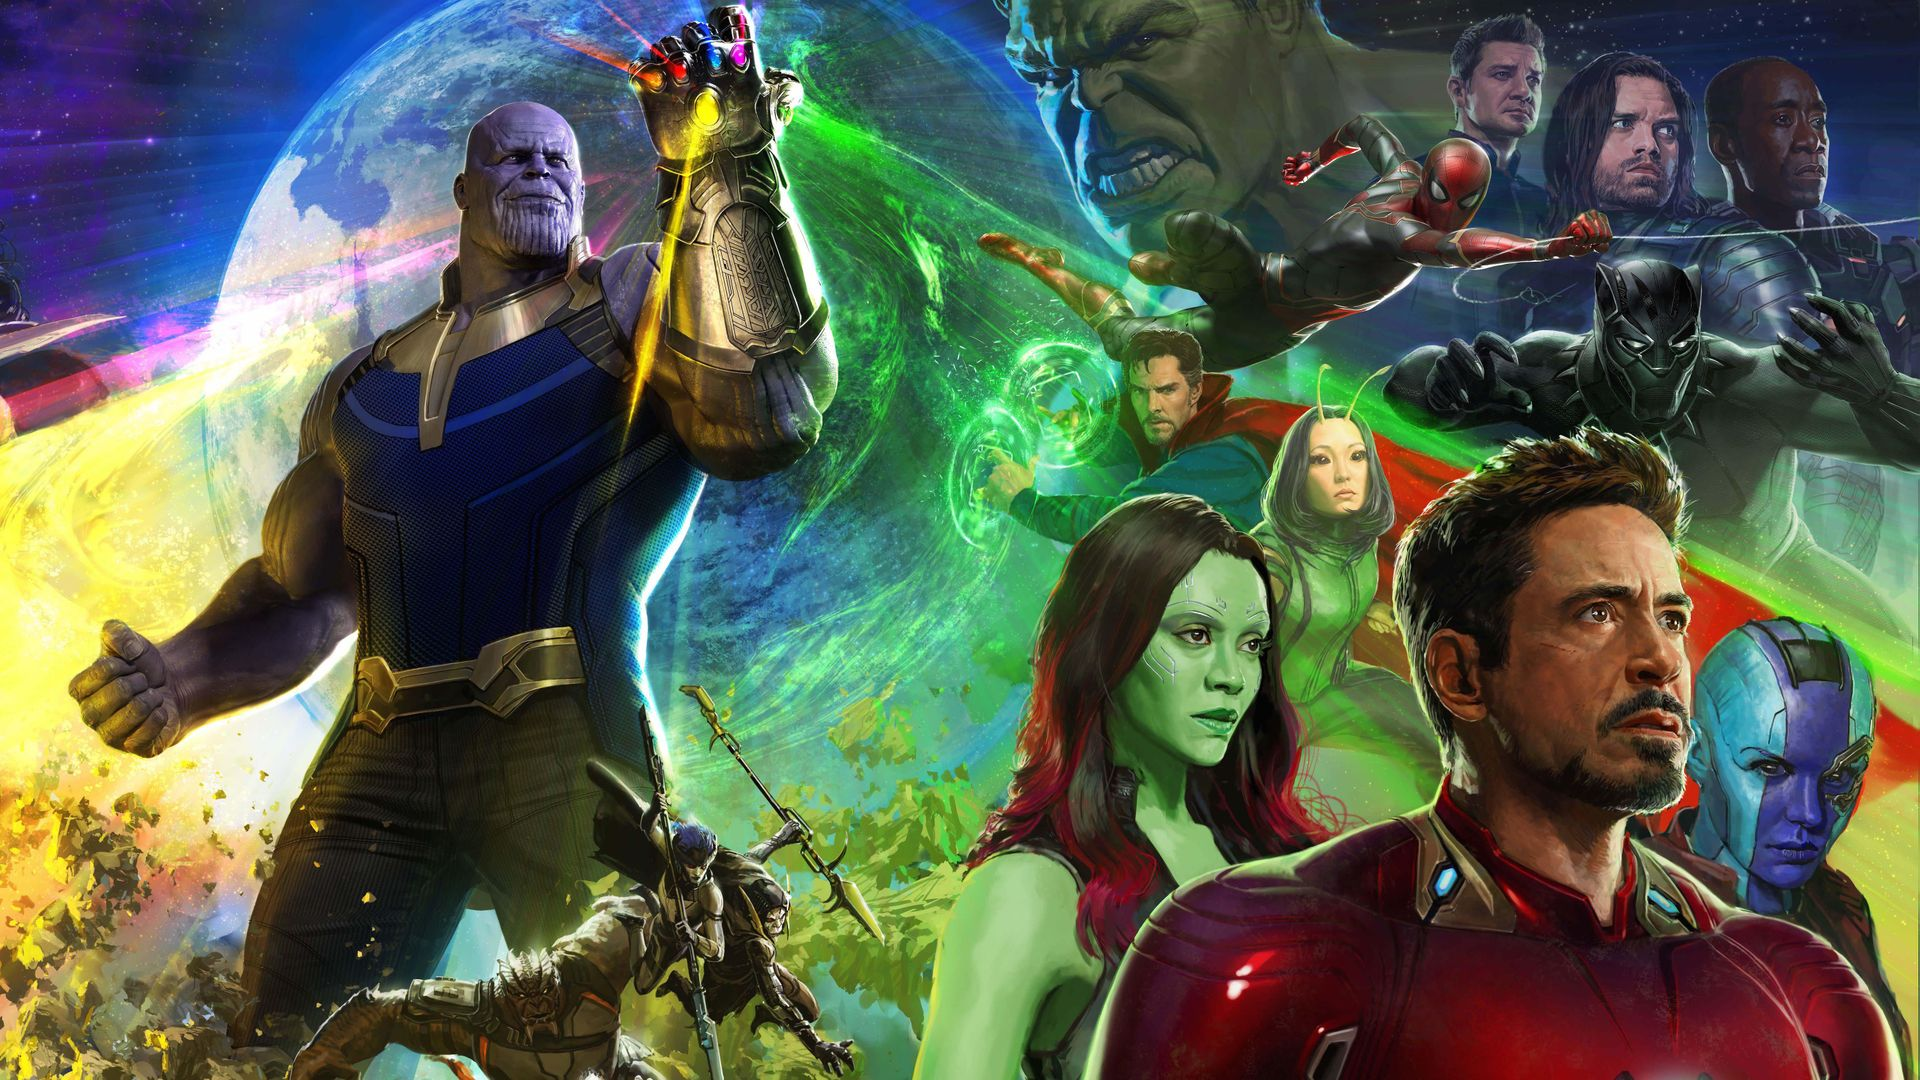 eternity,flick,infinity,warfare,moving picture,avengers : infinity war,retaliator,artwork,war,nontextual matter,movies,picture show,graphics,marvel,avengers,film,wonder